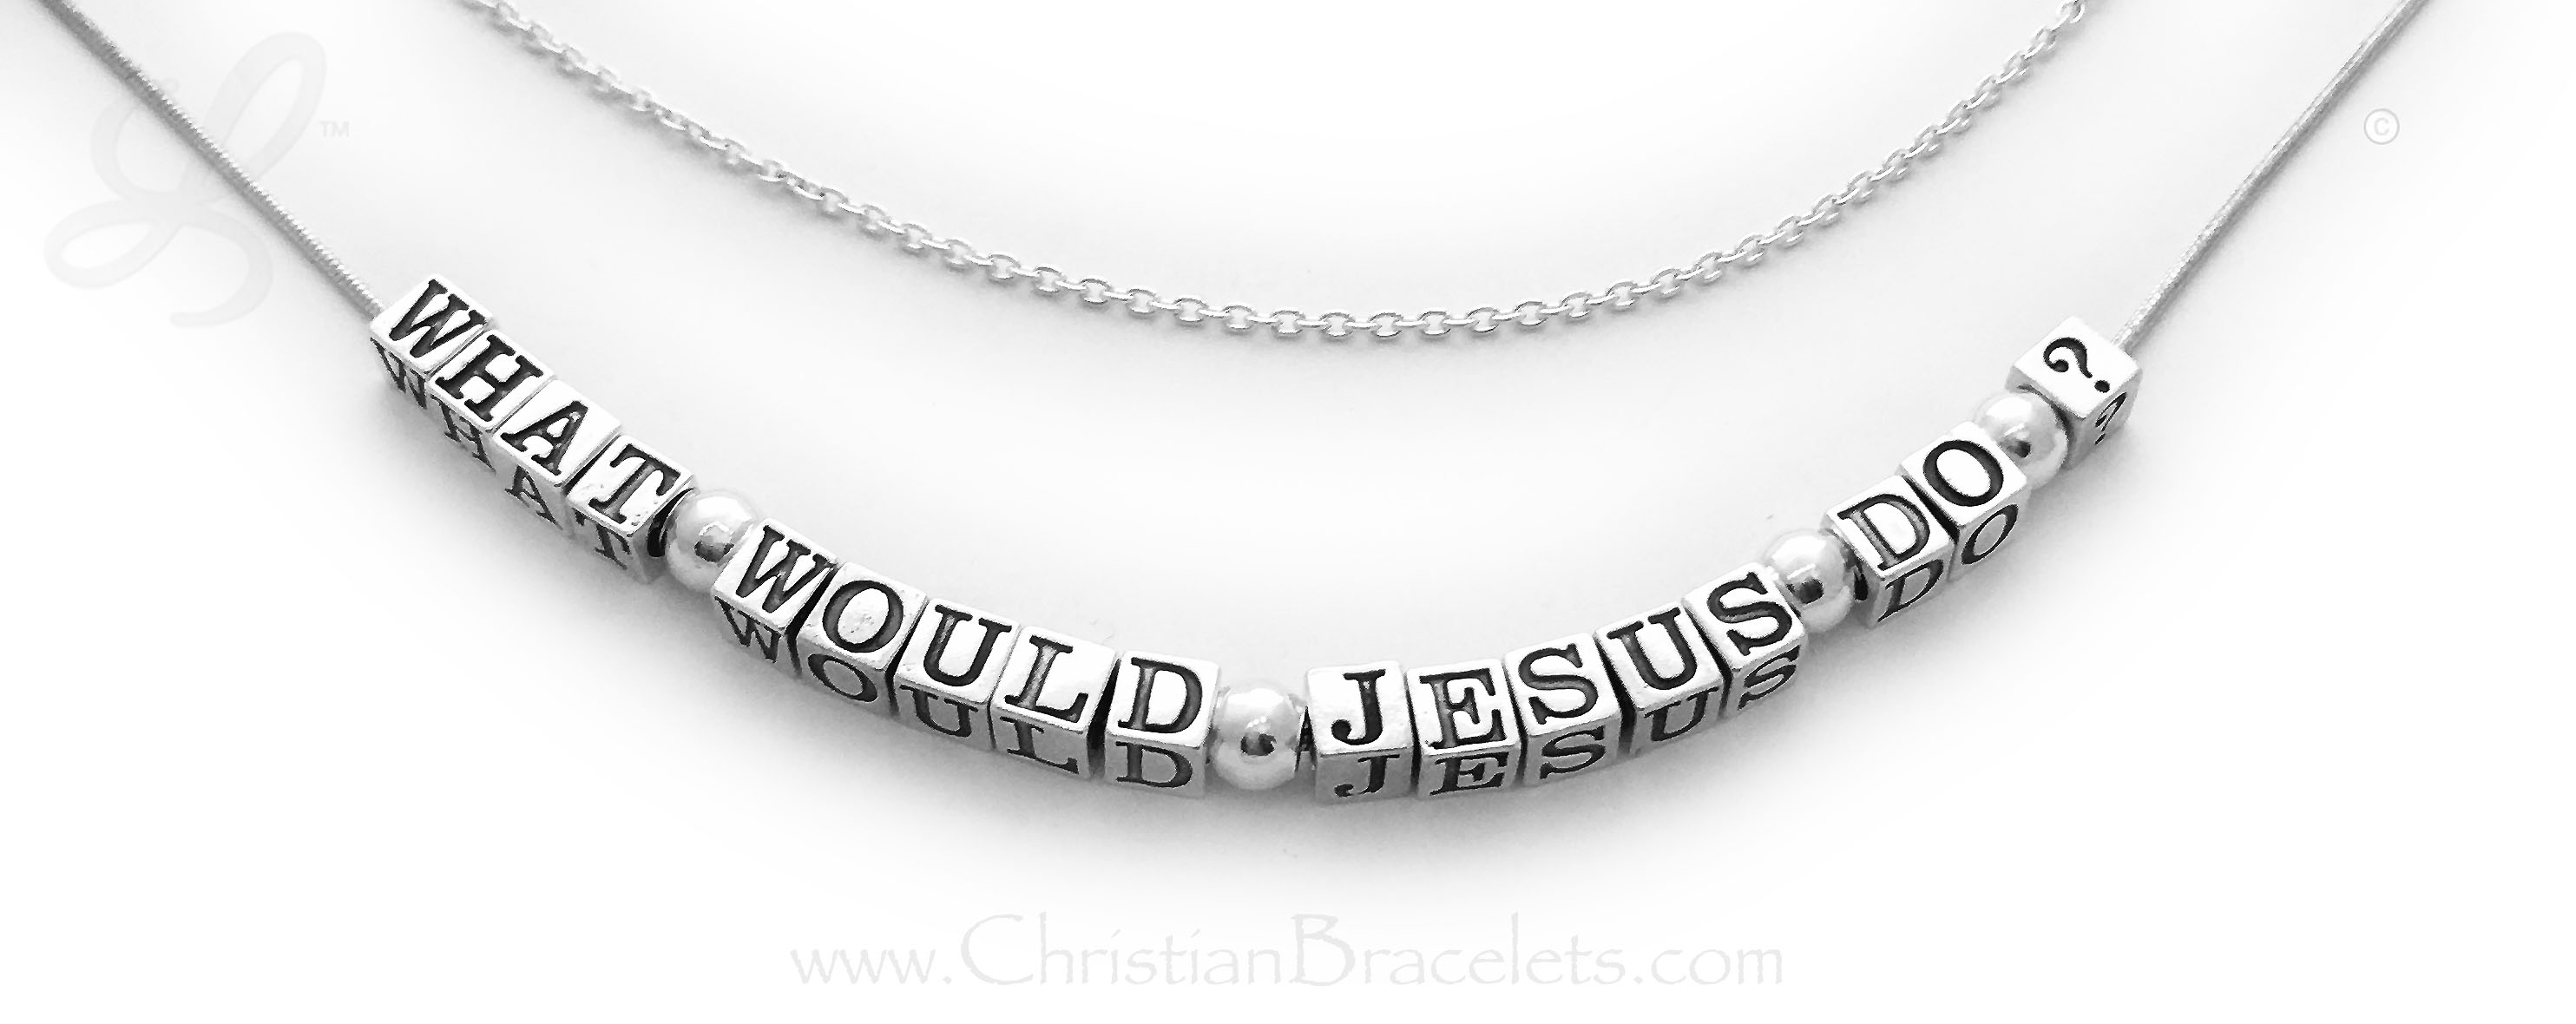 Sterling silver What Would Jesus Do? Necklace 17 characters / 5 spacers